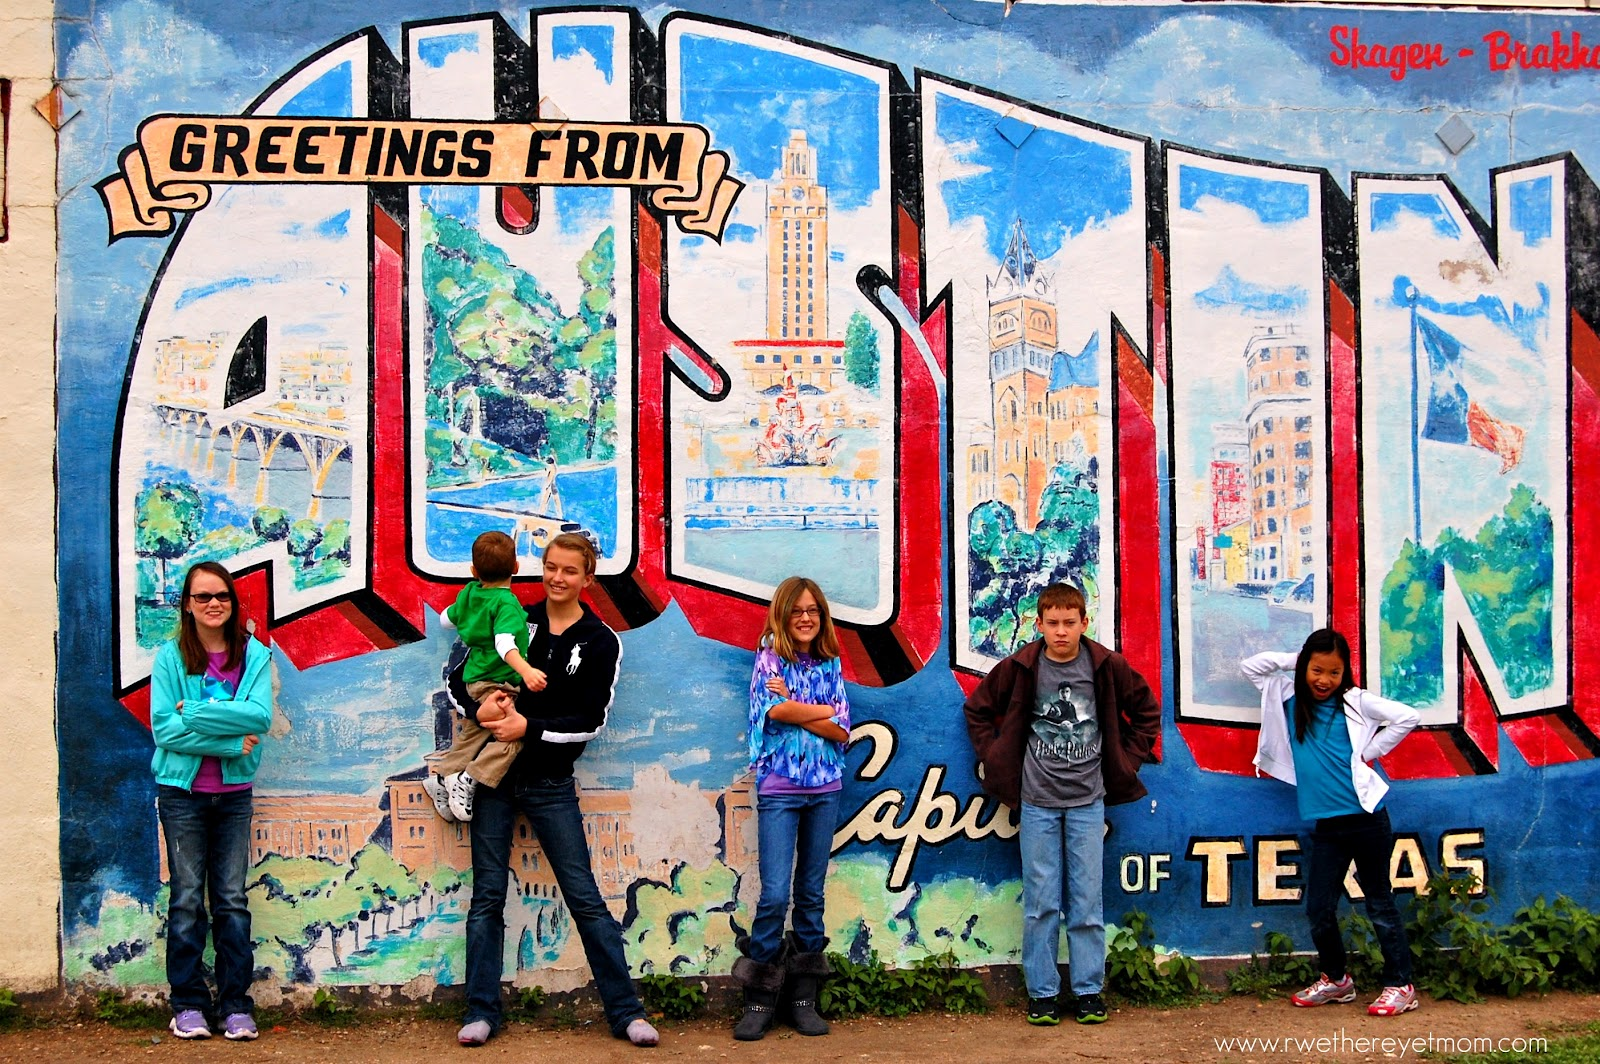 Austin Mural Location Of Greetings From Austin Murals In Austin Texas R We